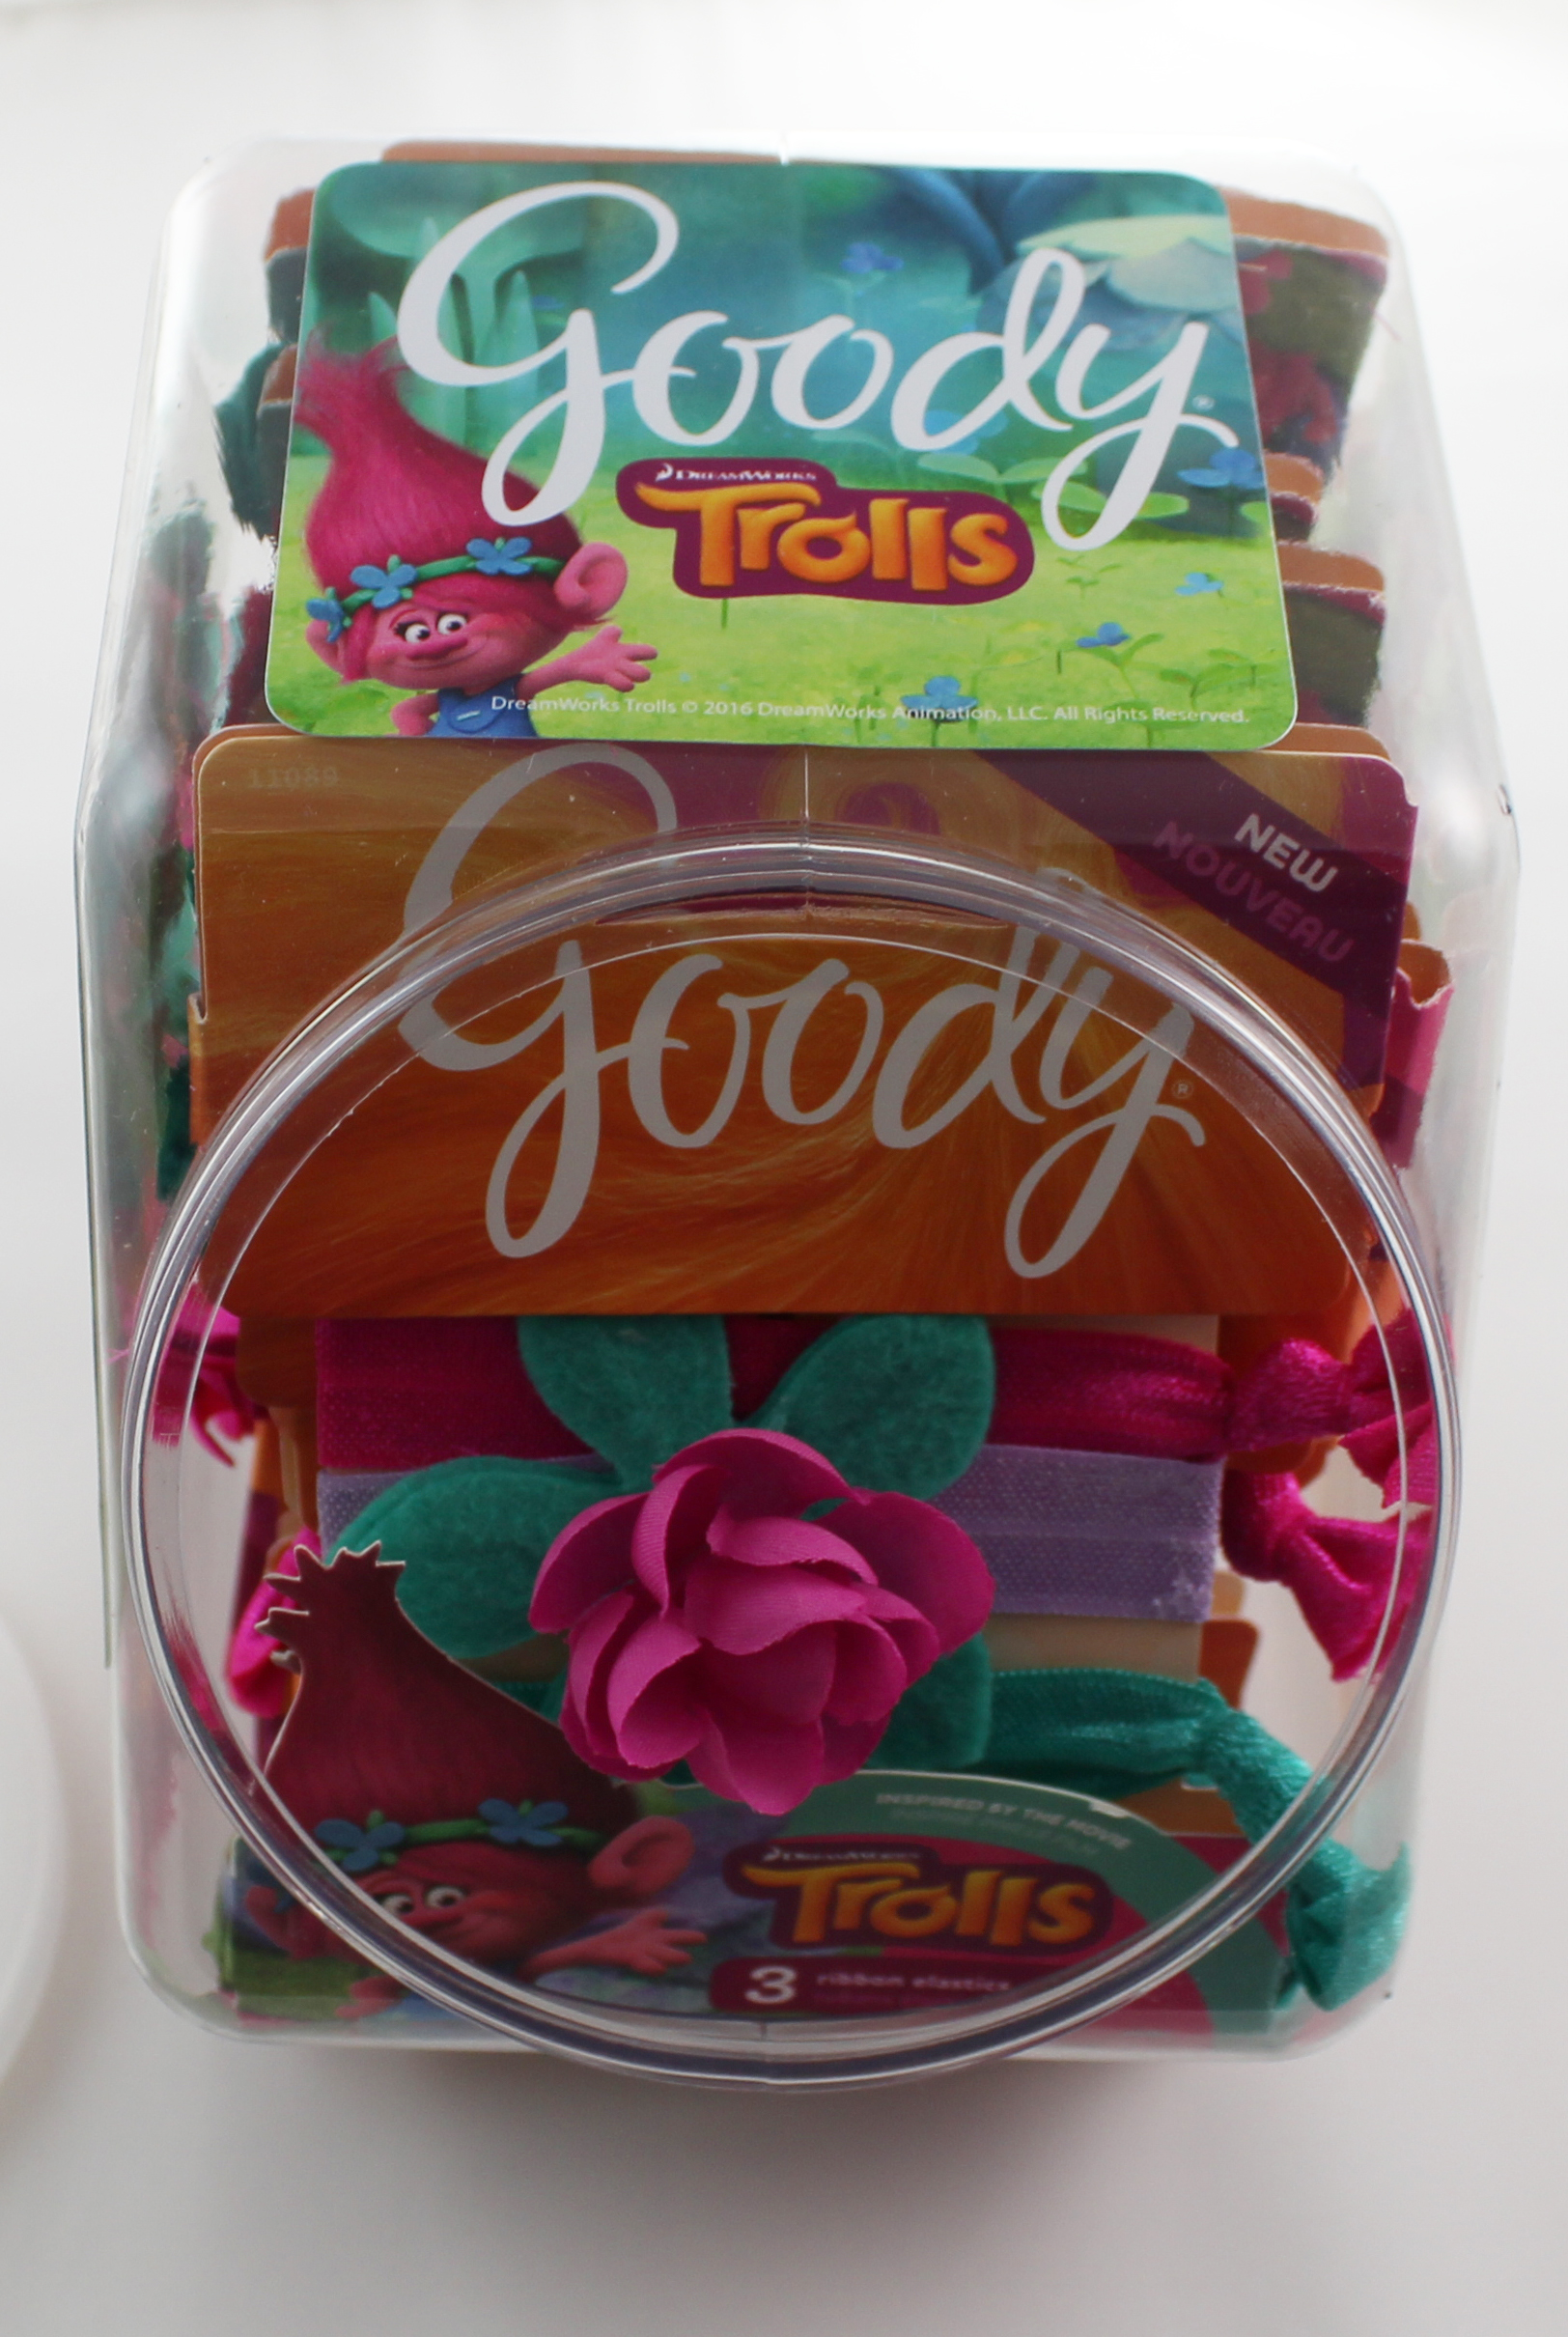 CHECKOUT CANISTER of 15 GOODY Girls Trolls Hugtime Ribbon Hair Elastics